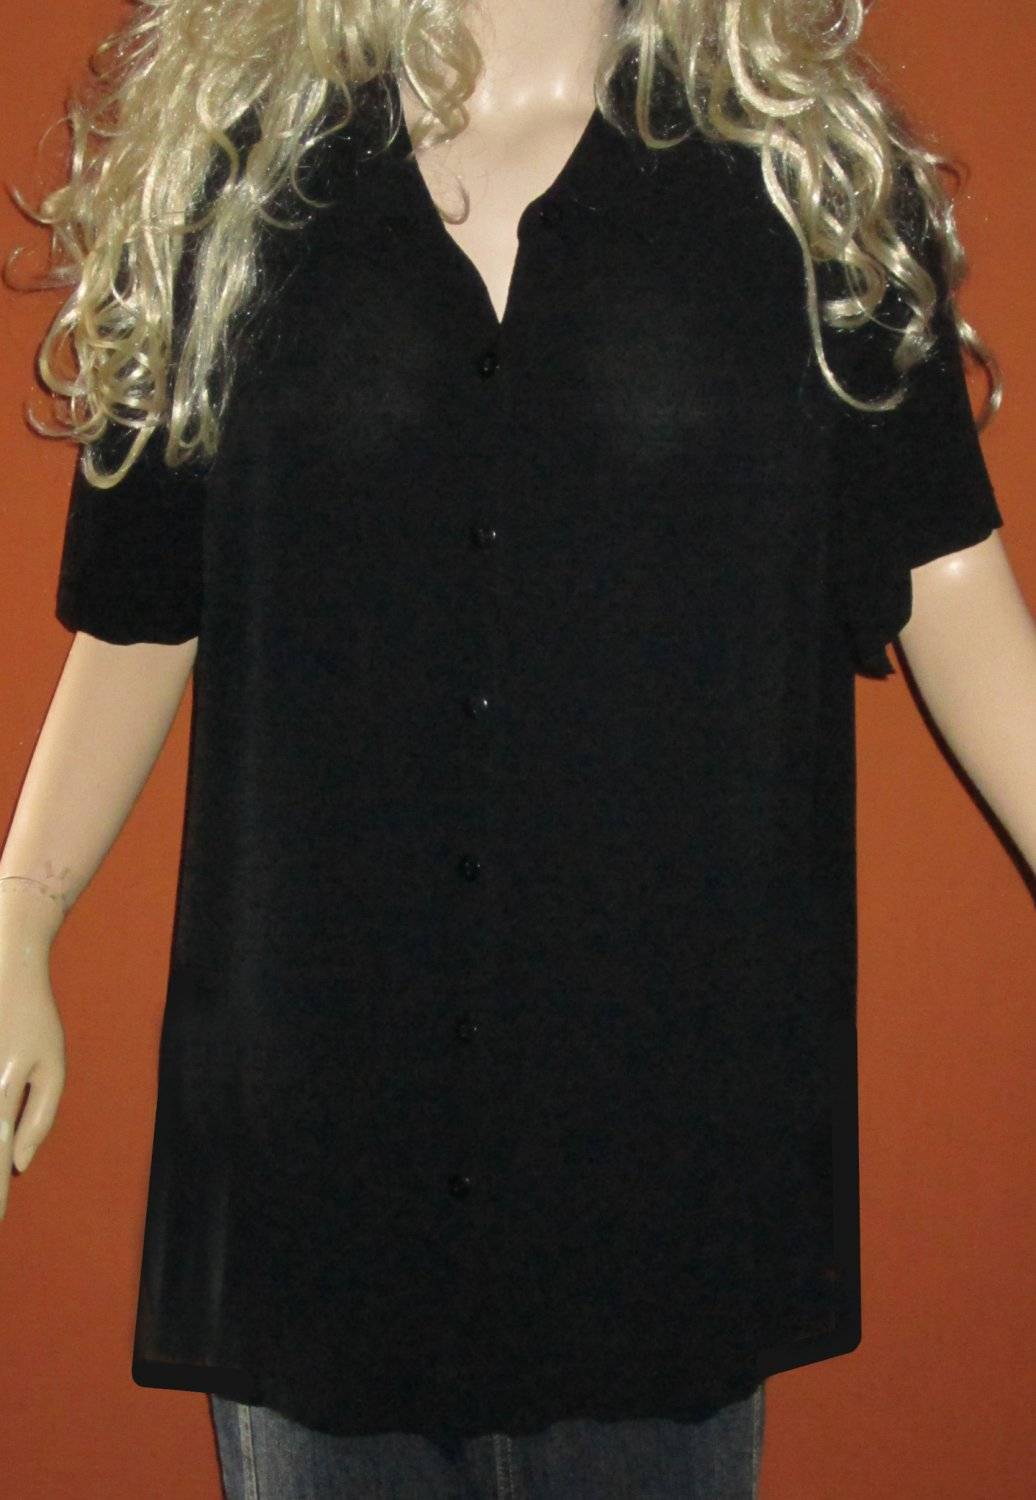 Venezia $45 Women's Black Short Sleeve Button Down Long Shirt Top 18-20 76977